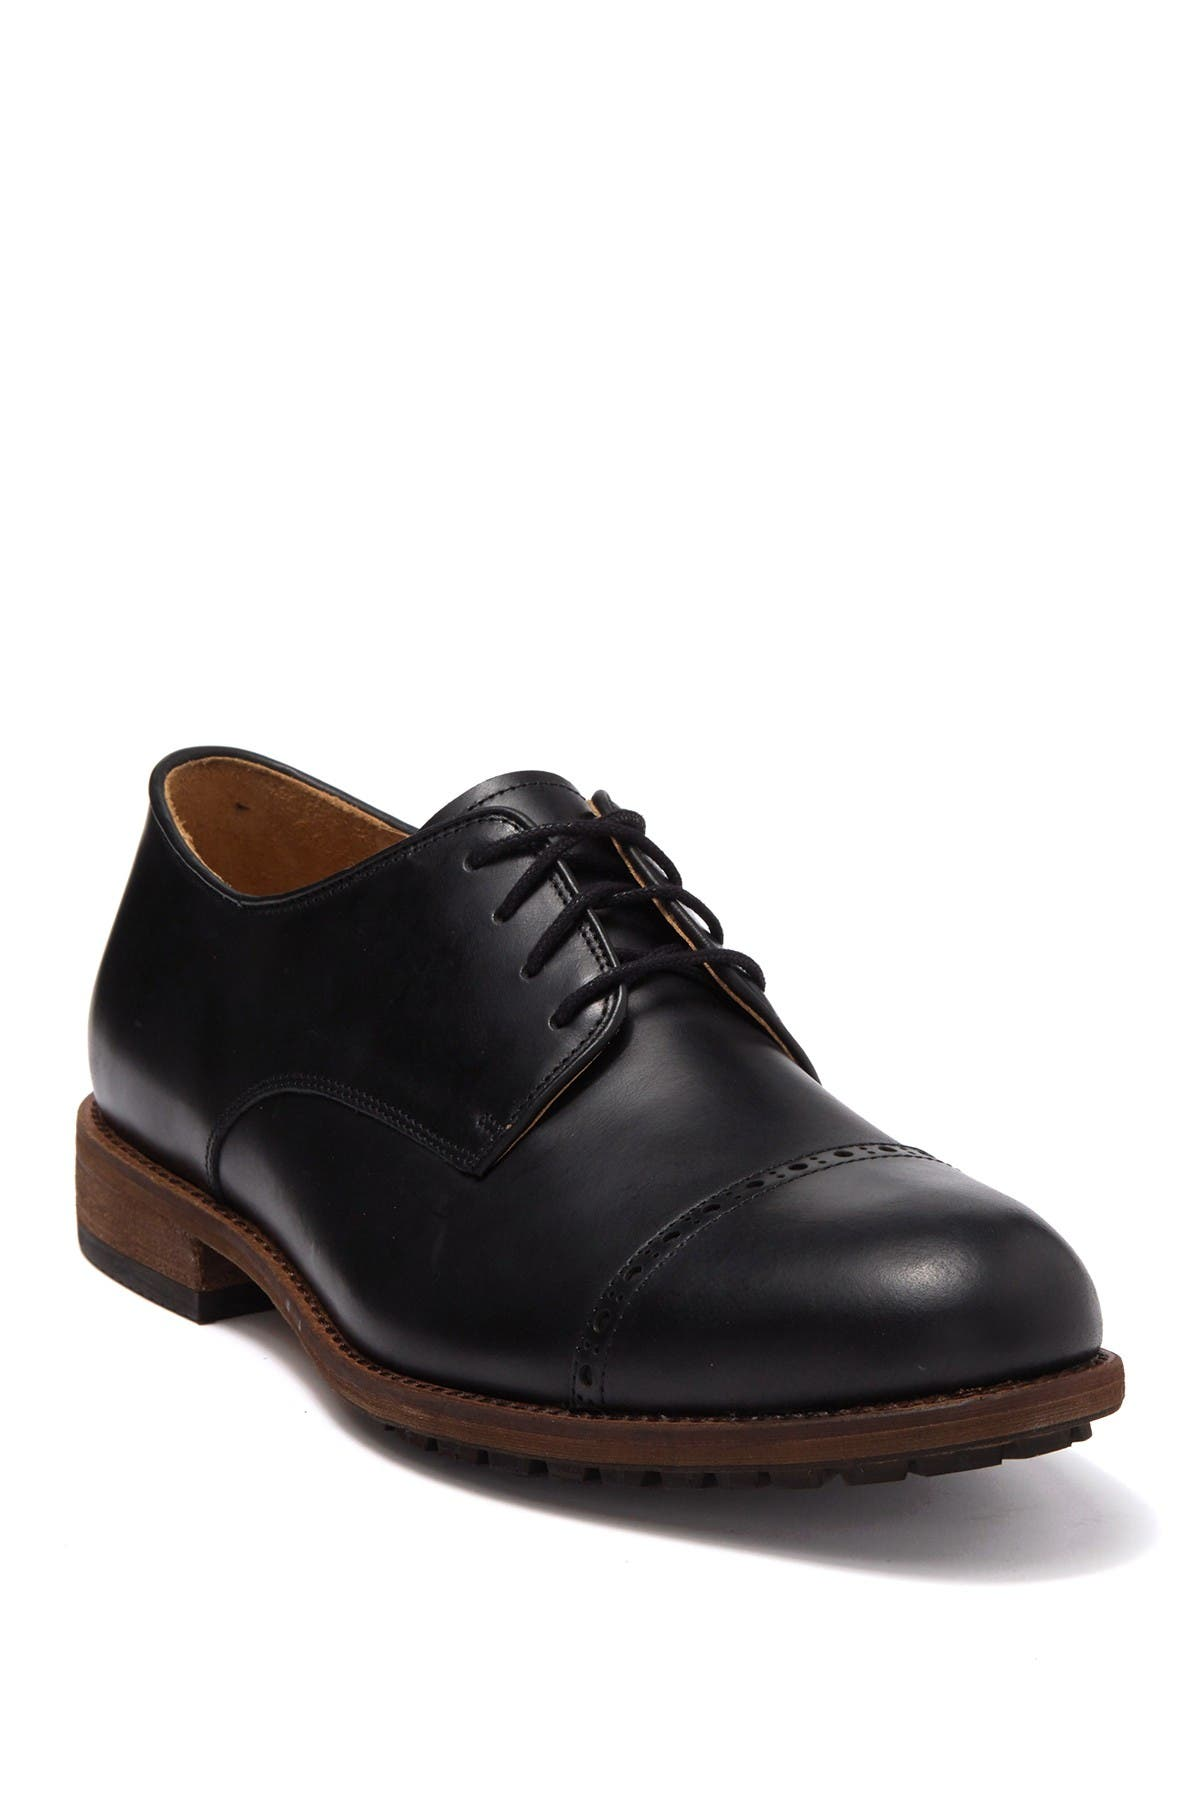 Image of Warfield & Grand Clark Cap Toe Leather Derby